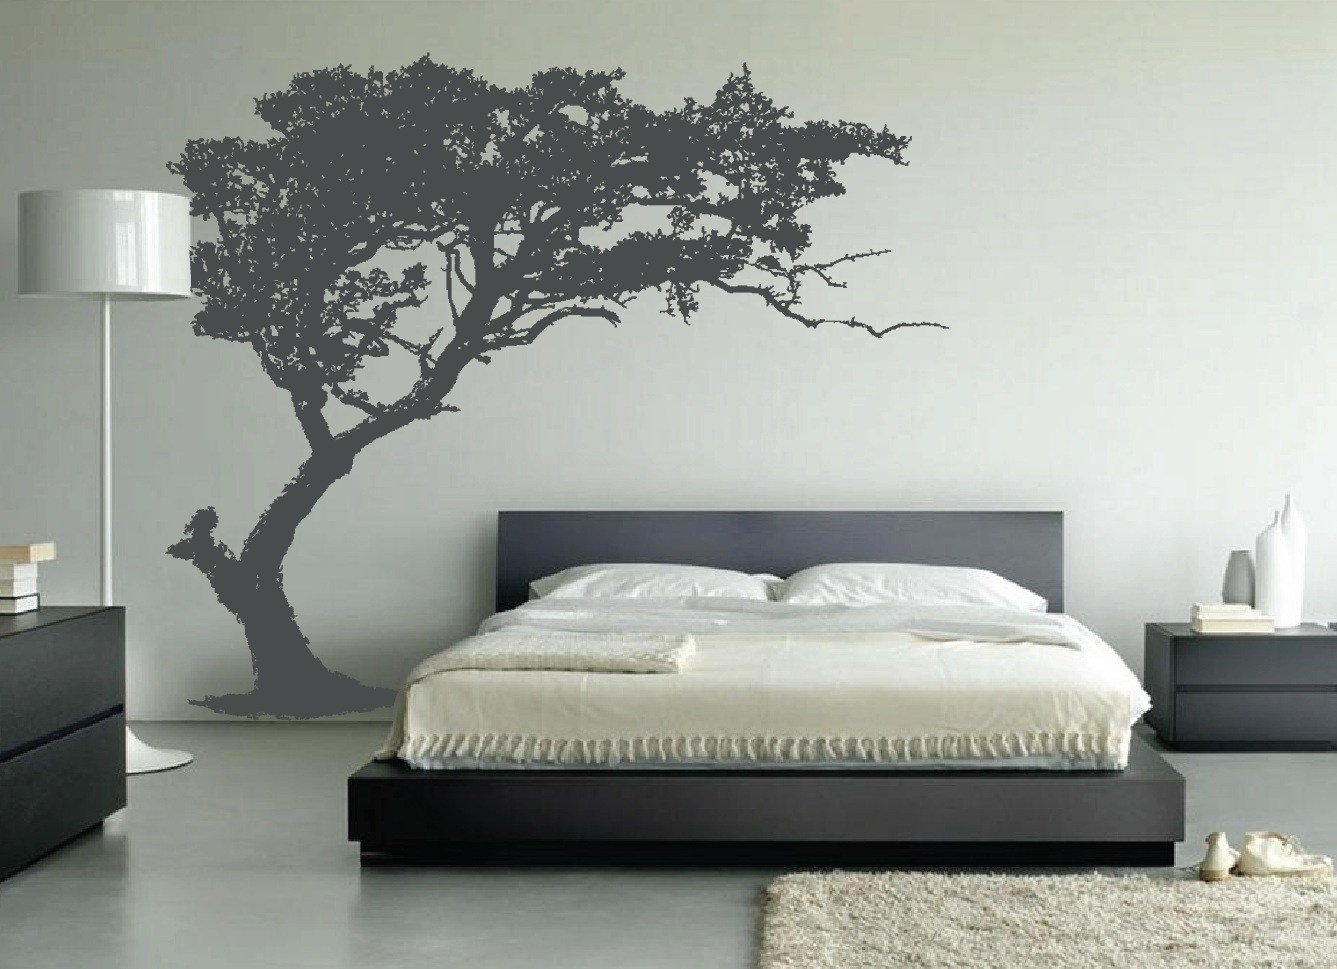 Best Large Wall Tree Decal Forest Decor Vinyl Sticker Highly Detailed Removable Nursery 1131 With Pictures